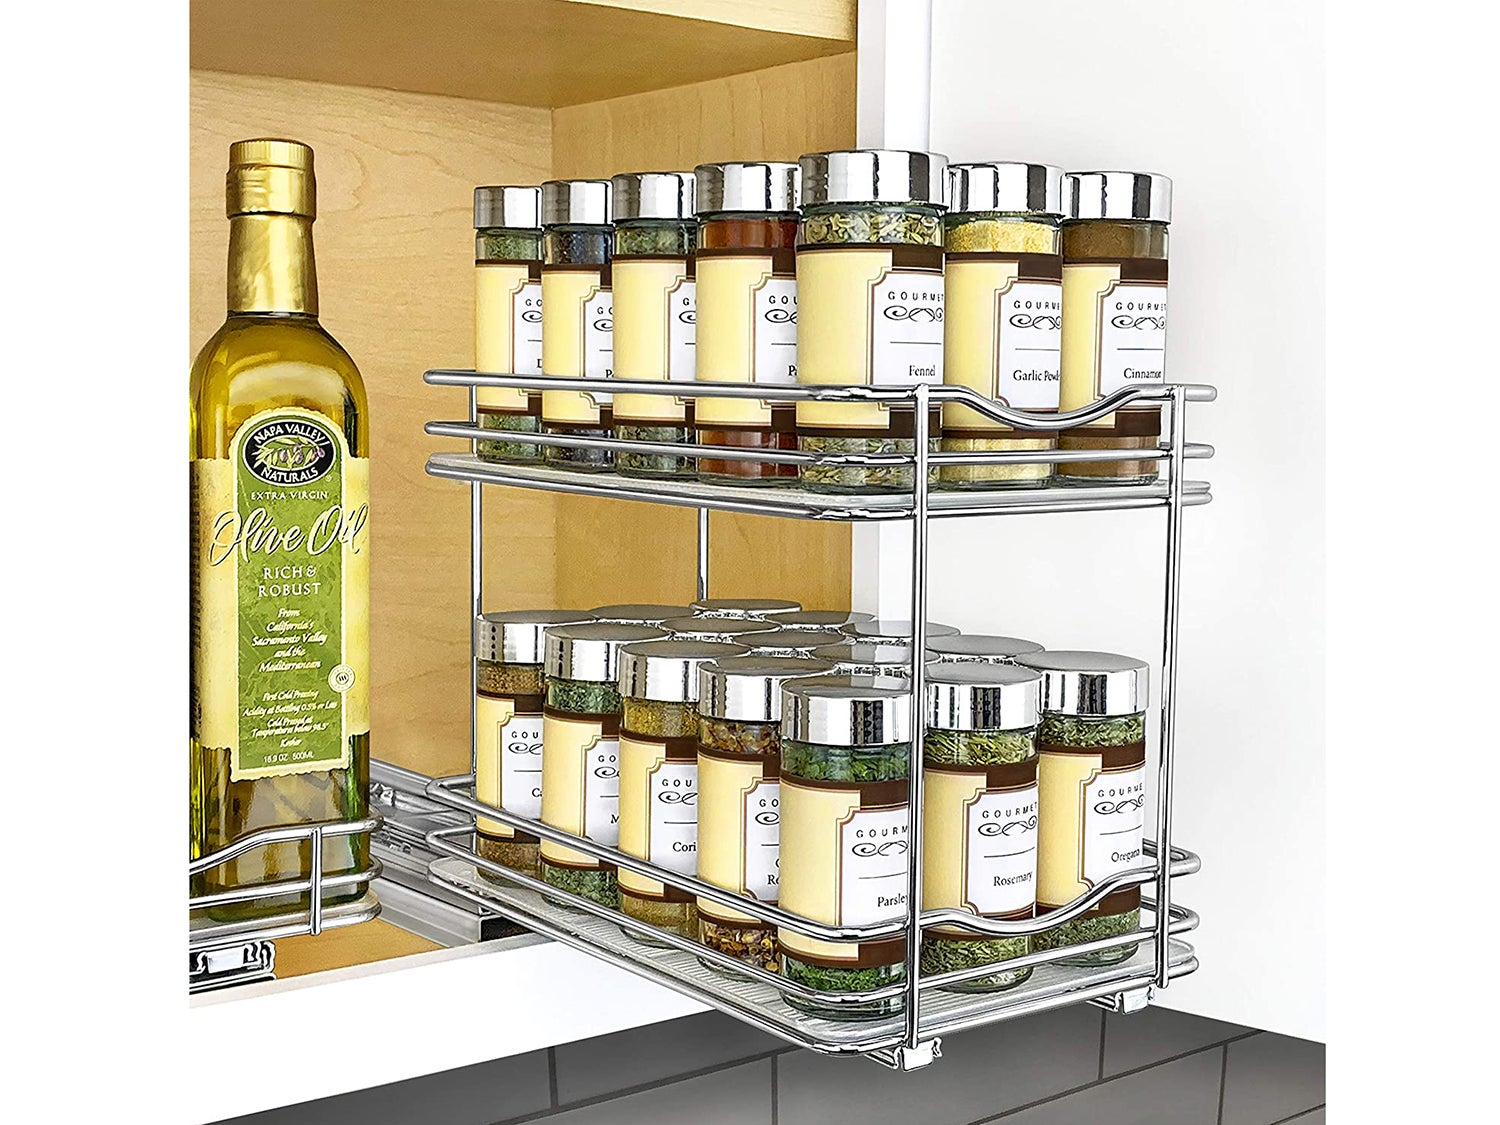 Lynk Professional 430622DS Slide Out Double Spice Rack Kitchen Upper Cabinet Organizer, 6